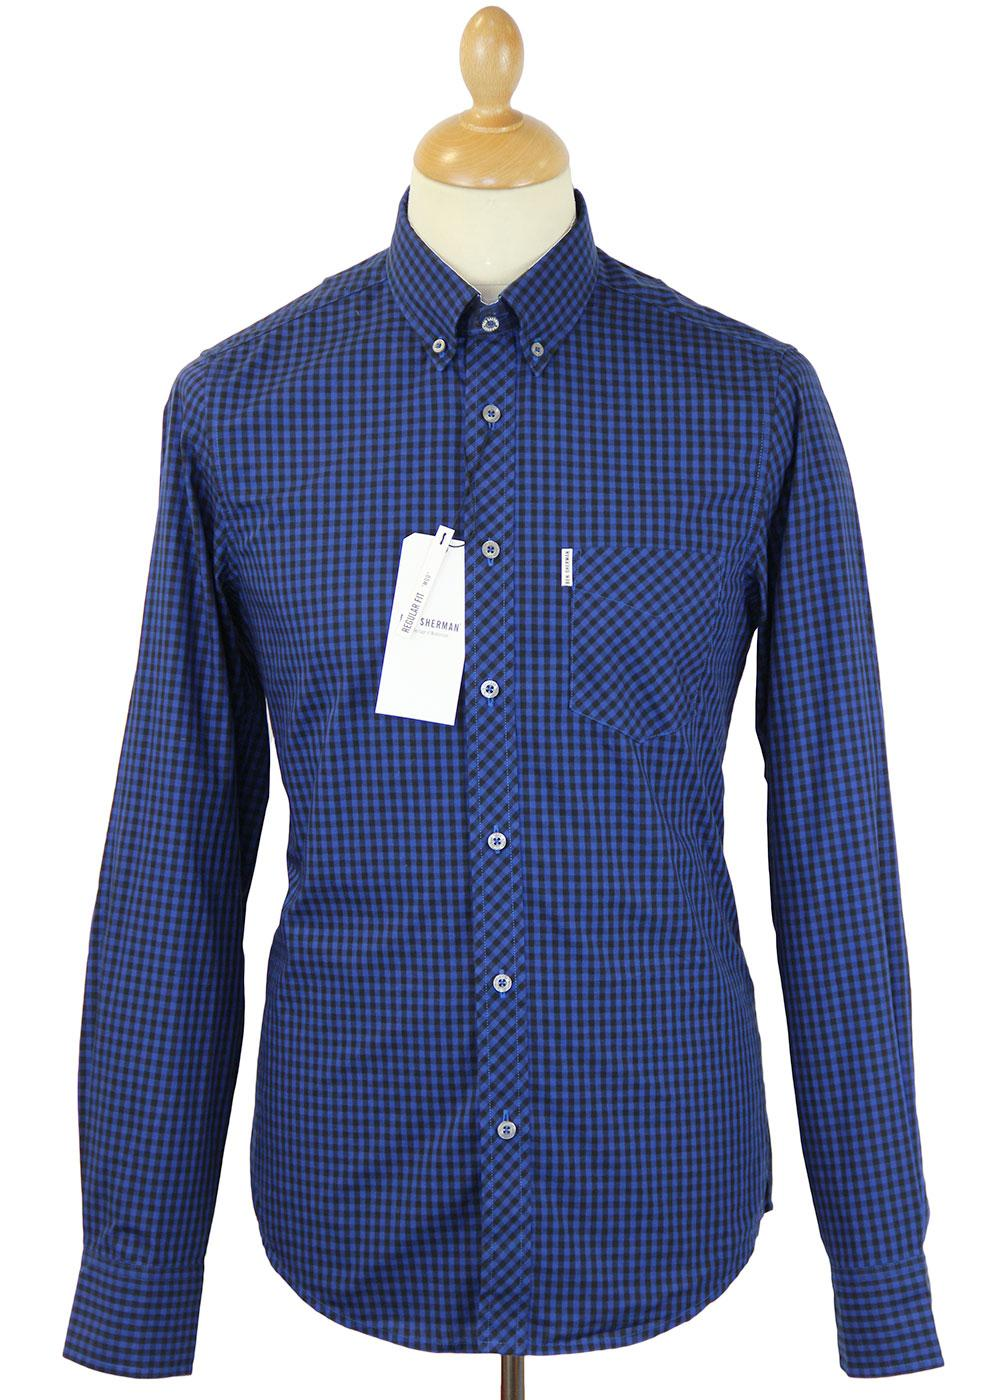 BEN SHERMAN Retro 60s Mod Gingham L/S Shirt (DB)